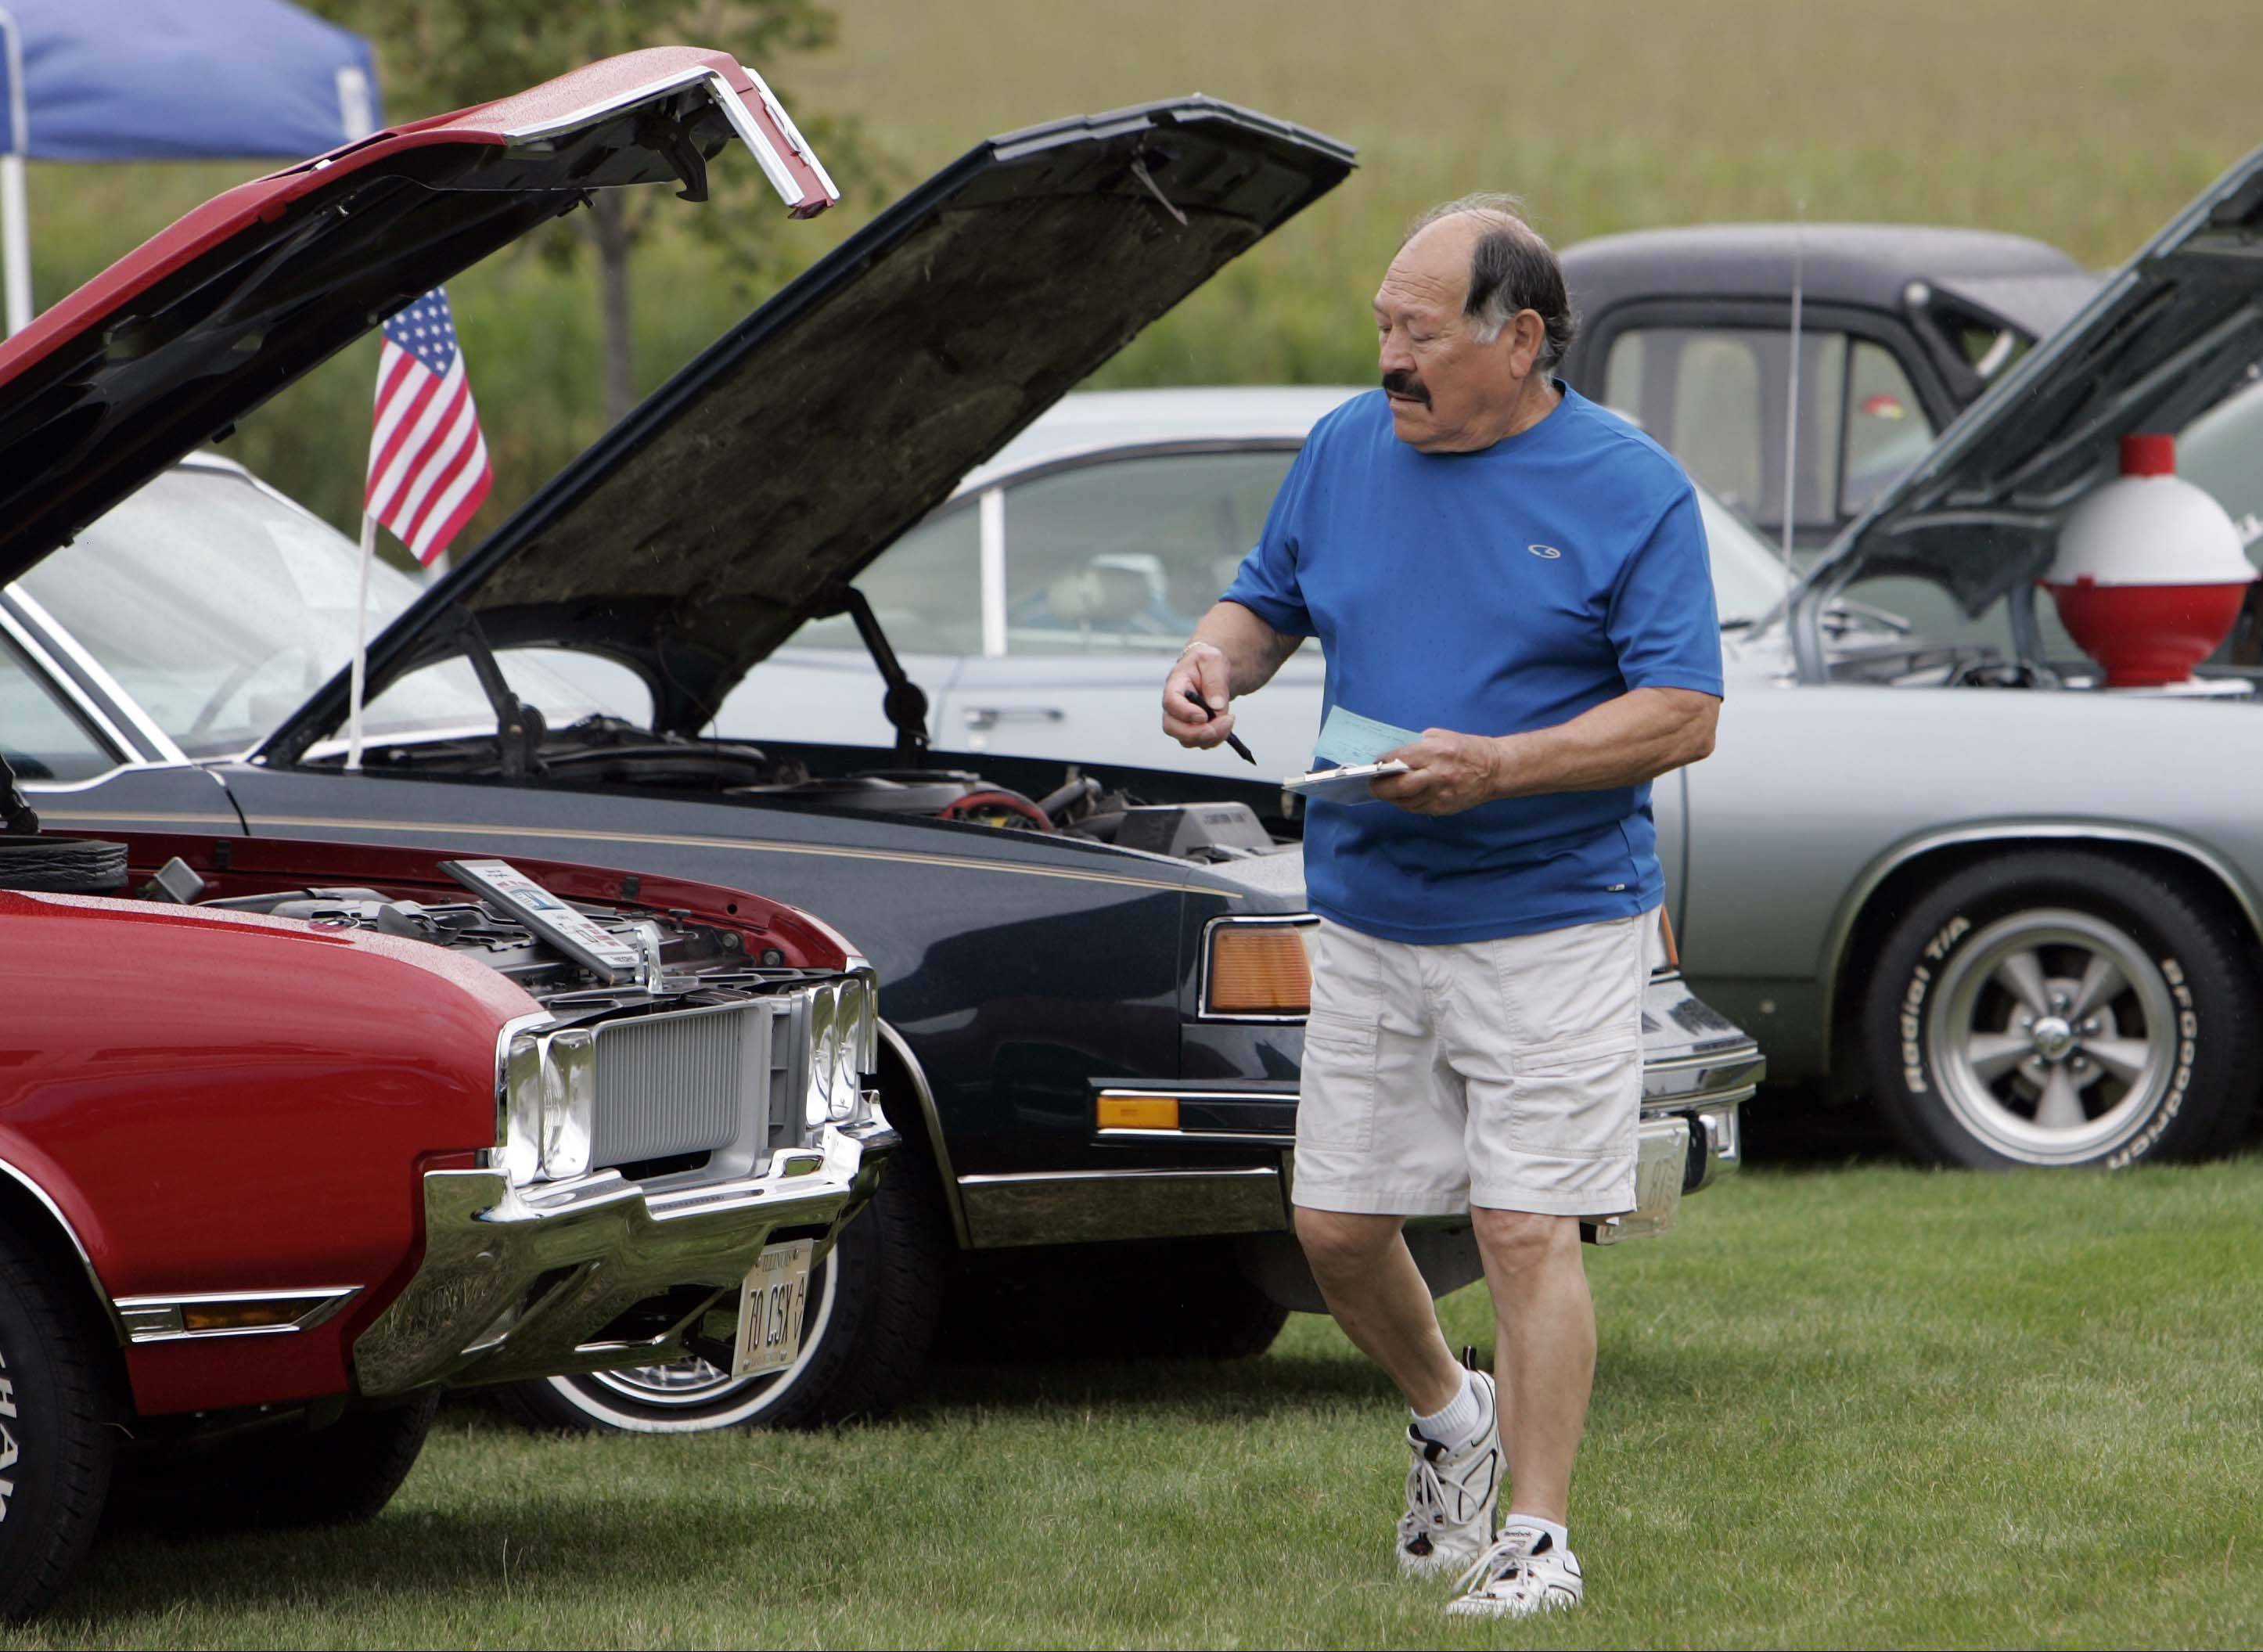 Kane sheriff charity car show cut short by rain